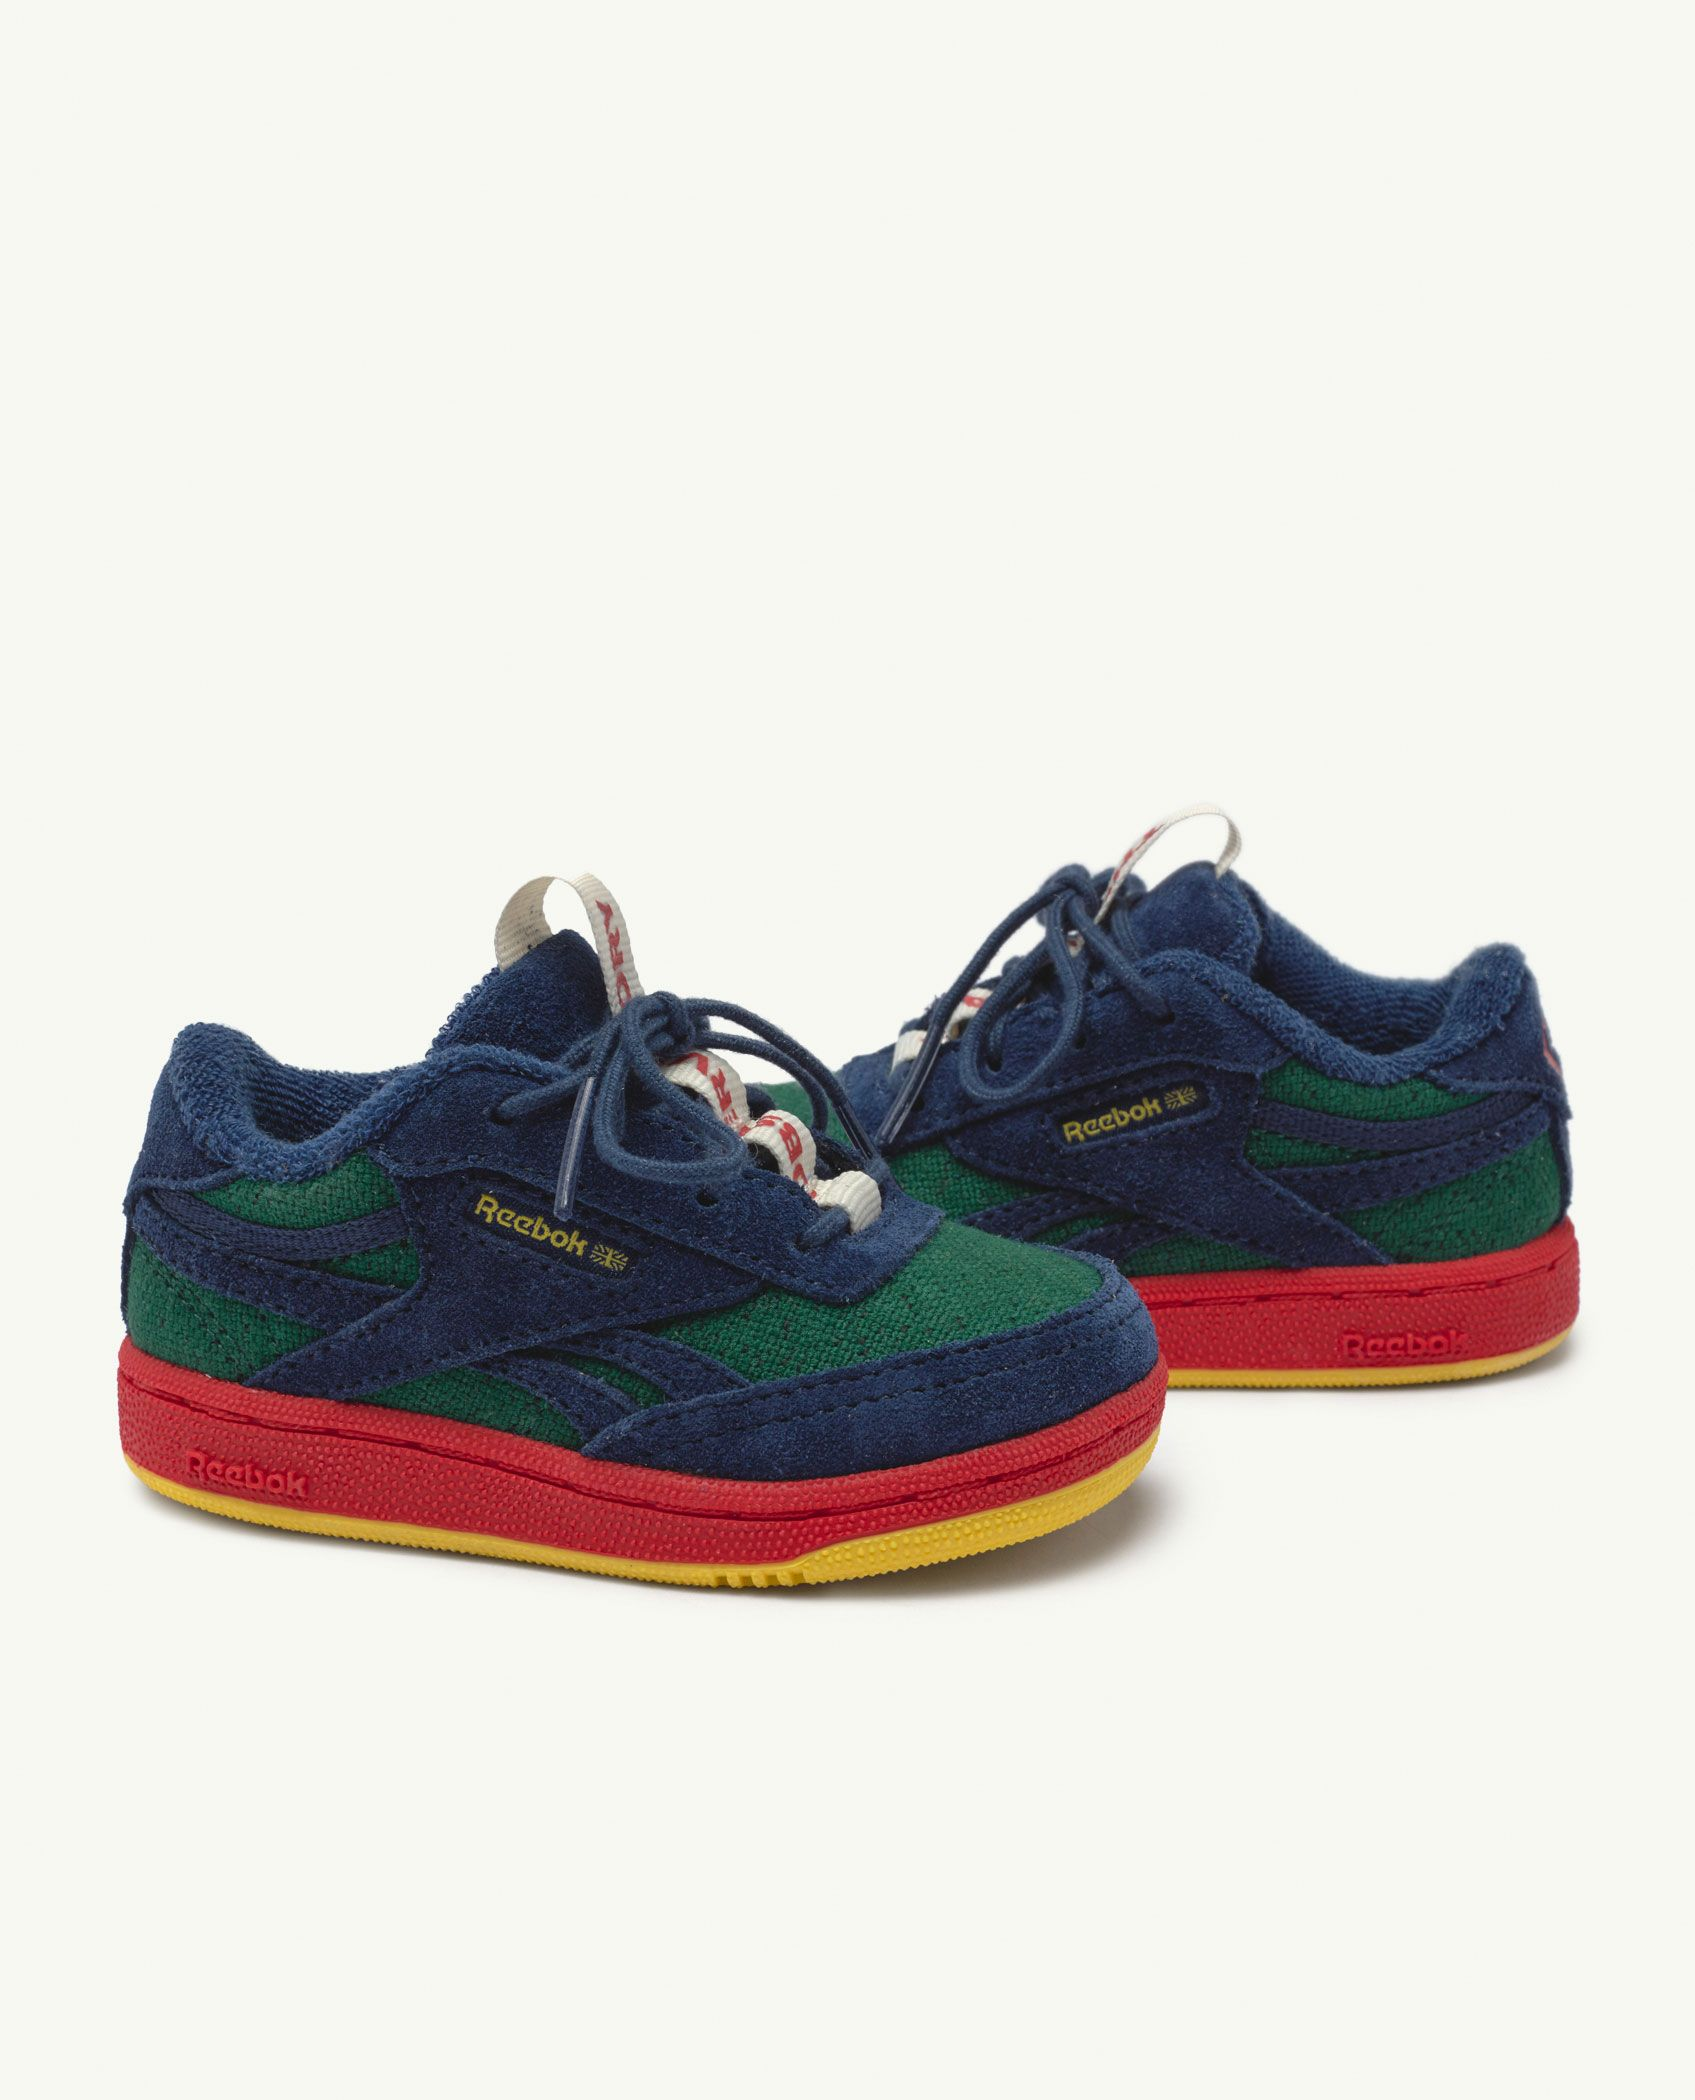 Reebok Club C Revenge Baby x The Animals Observatory Navy img-1